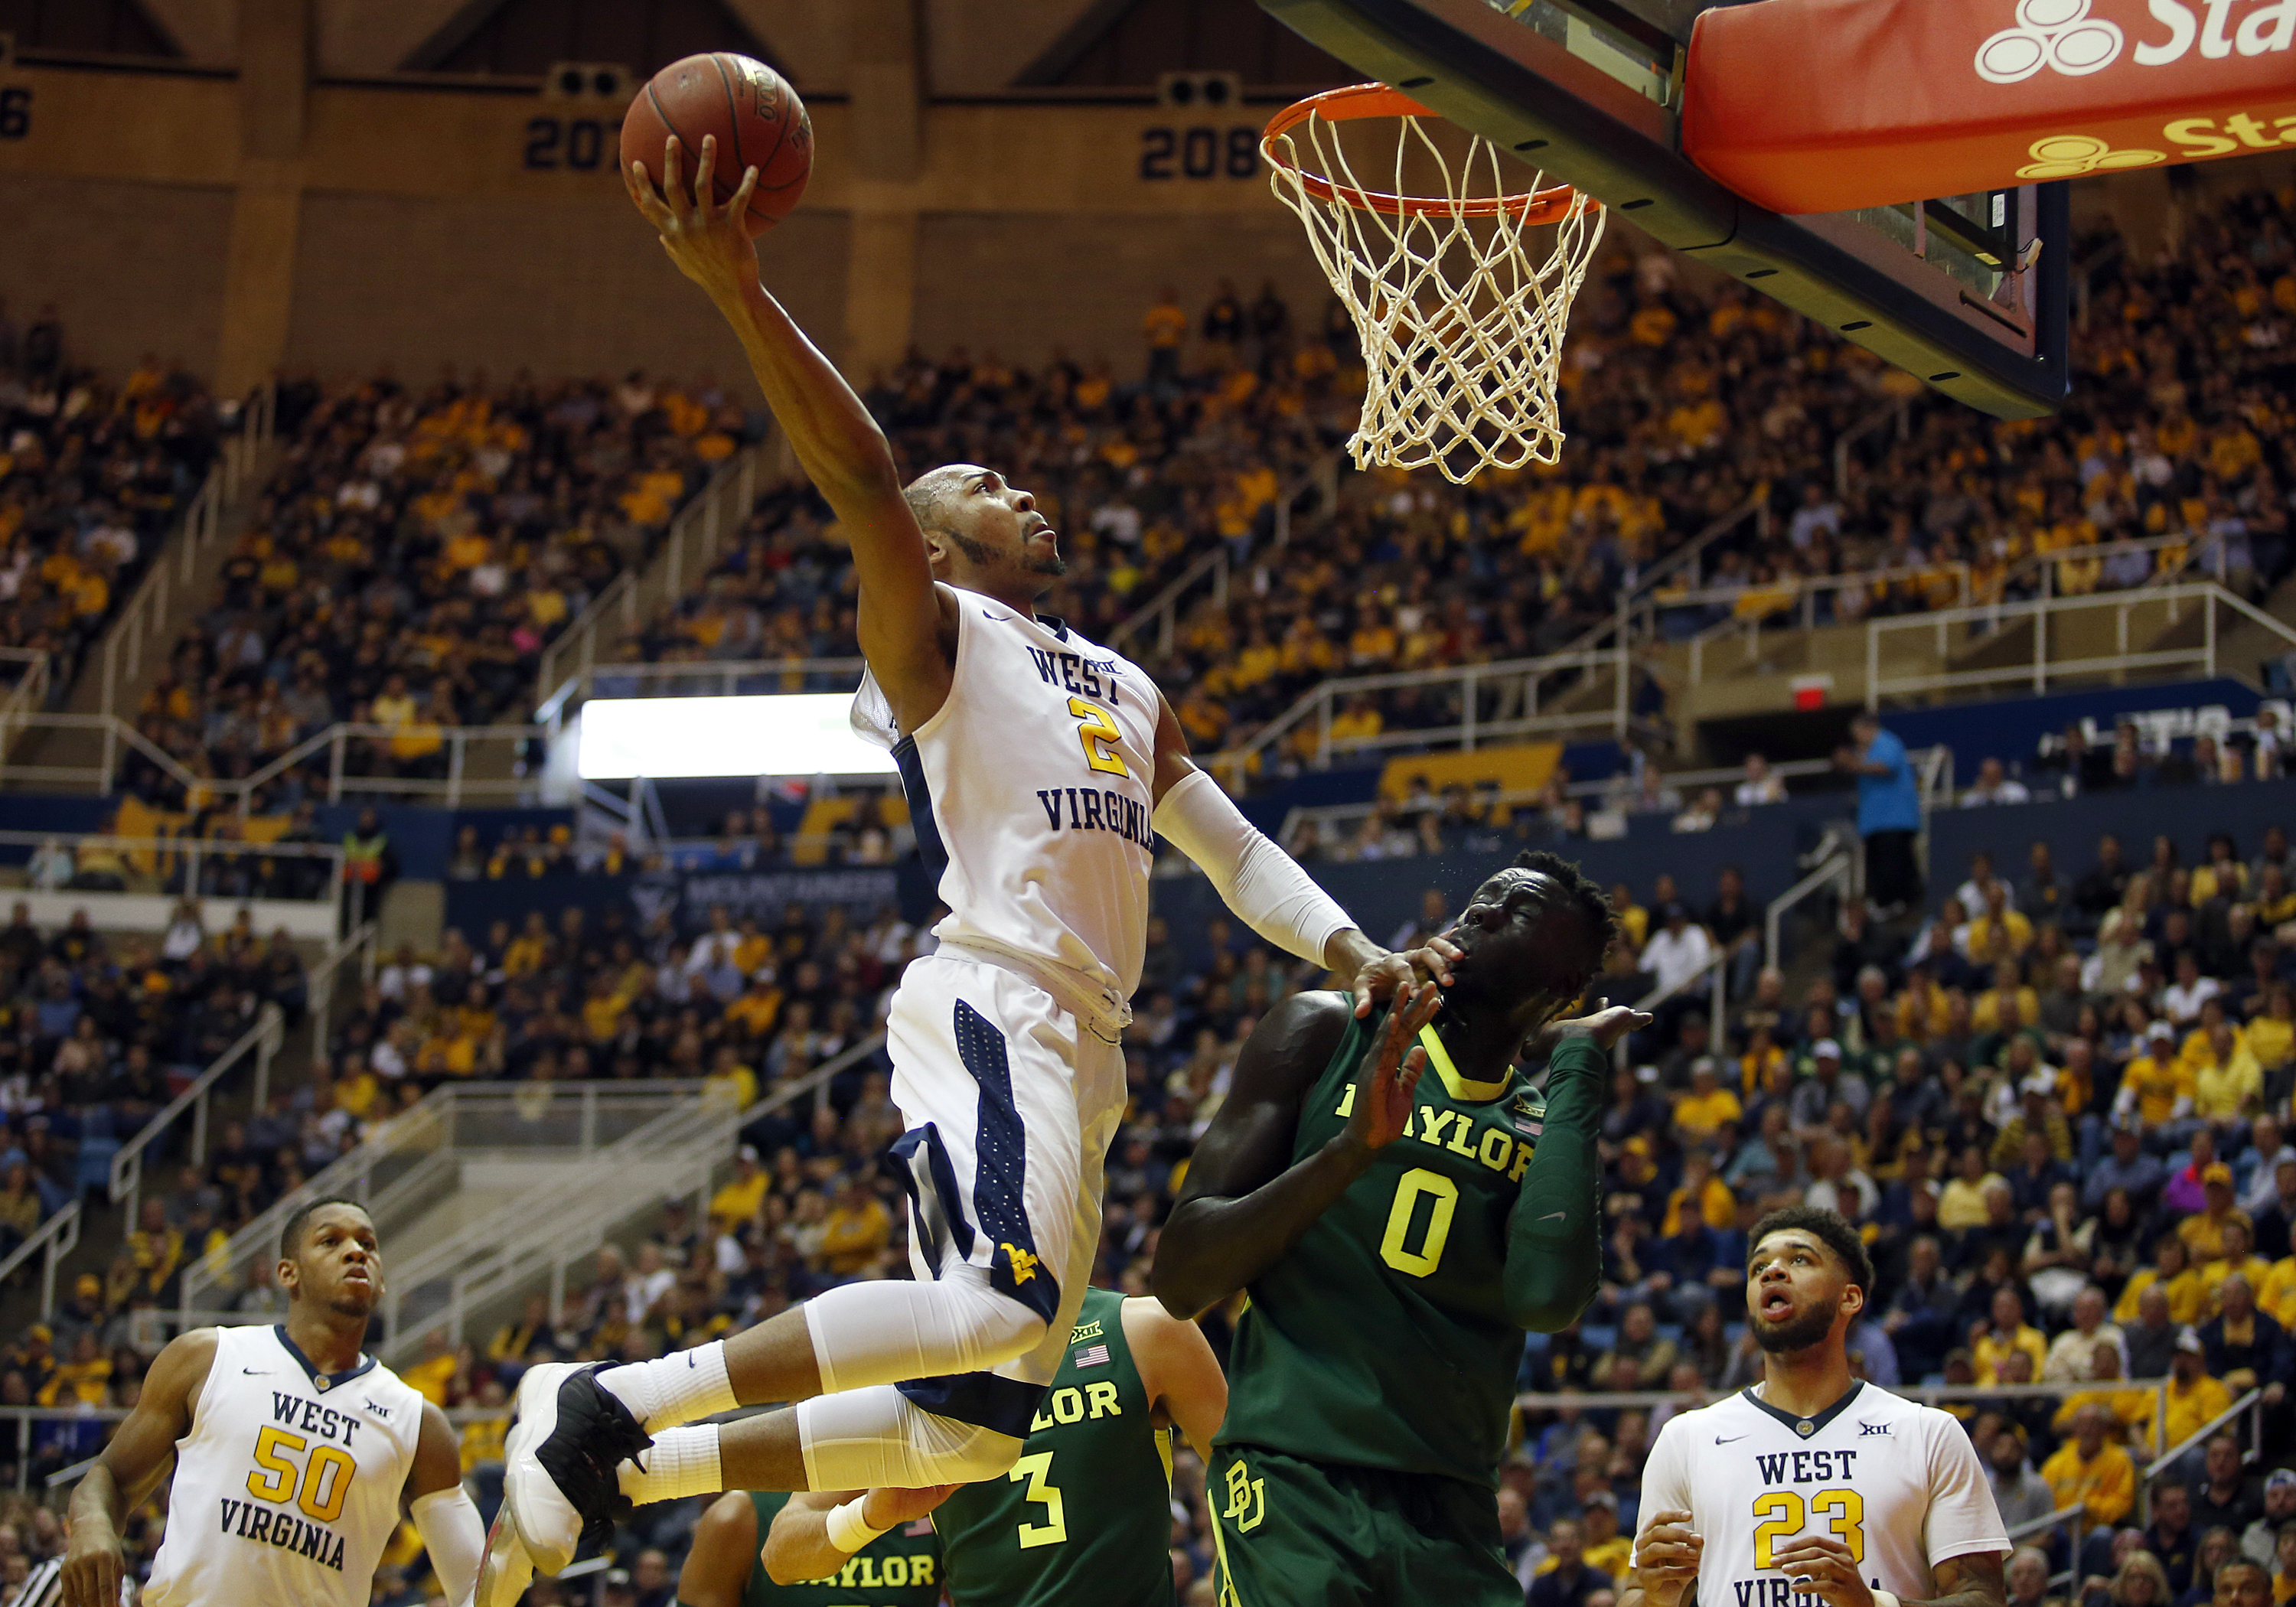 West Virginia's Jevon Carter leads the transition-fueled Mountaineers in many major statistical categories, including points per game and assists. (Getty Images)